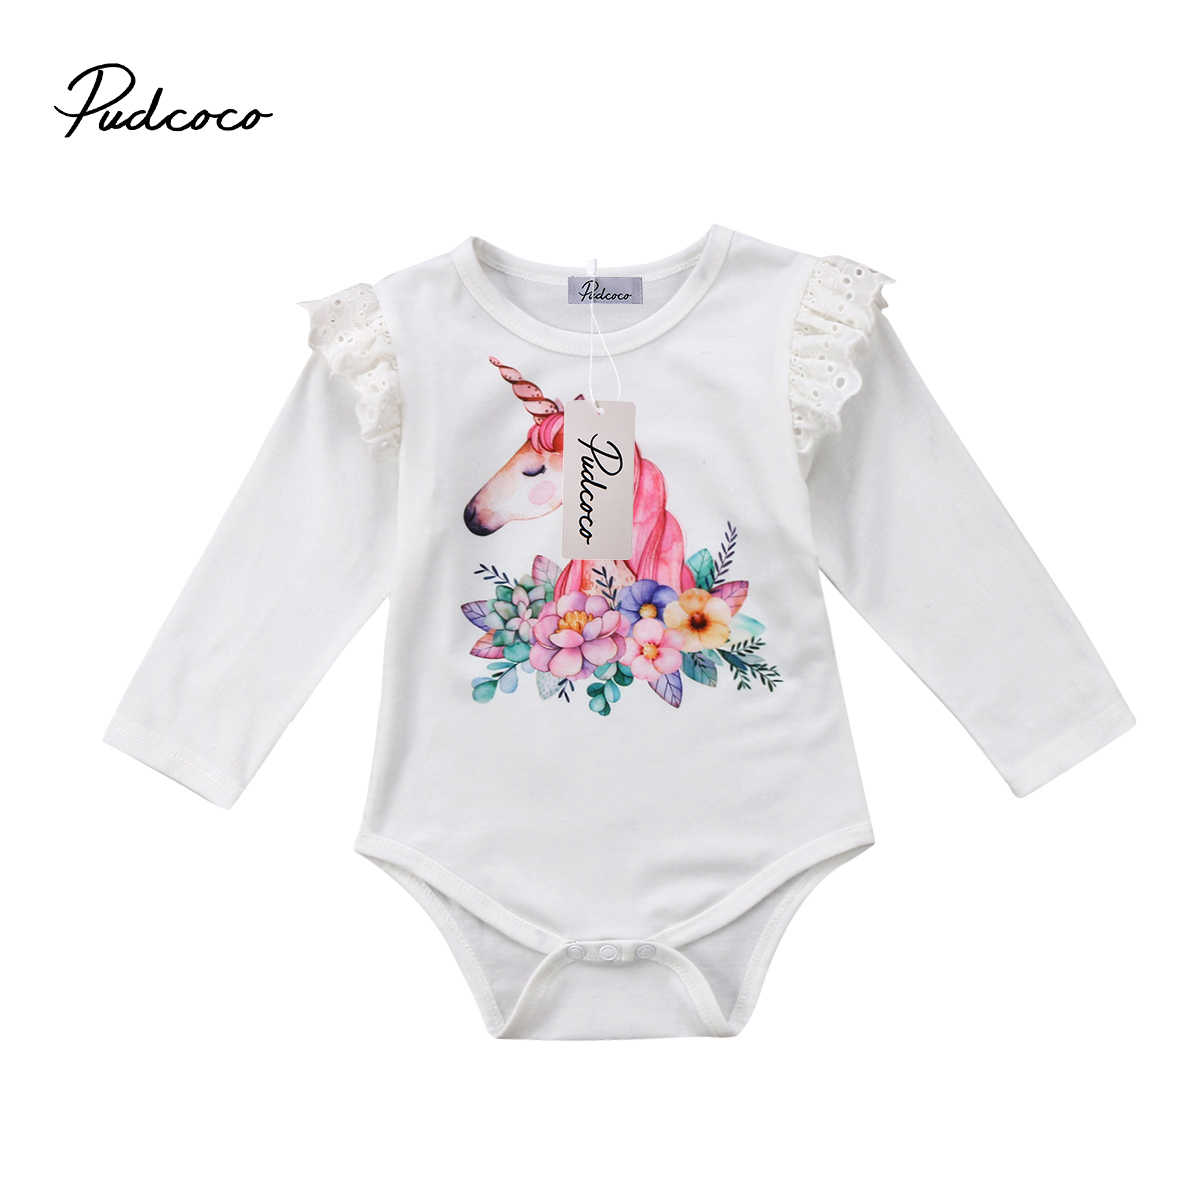 f6266a359 Detail Feedback Questions about Pudcoco Newborn Baby Girls Cotton ...